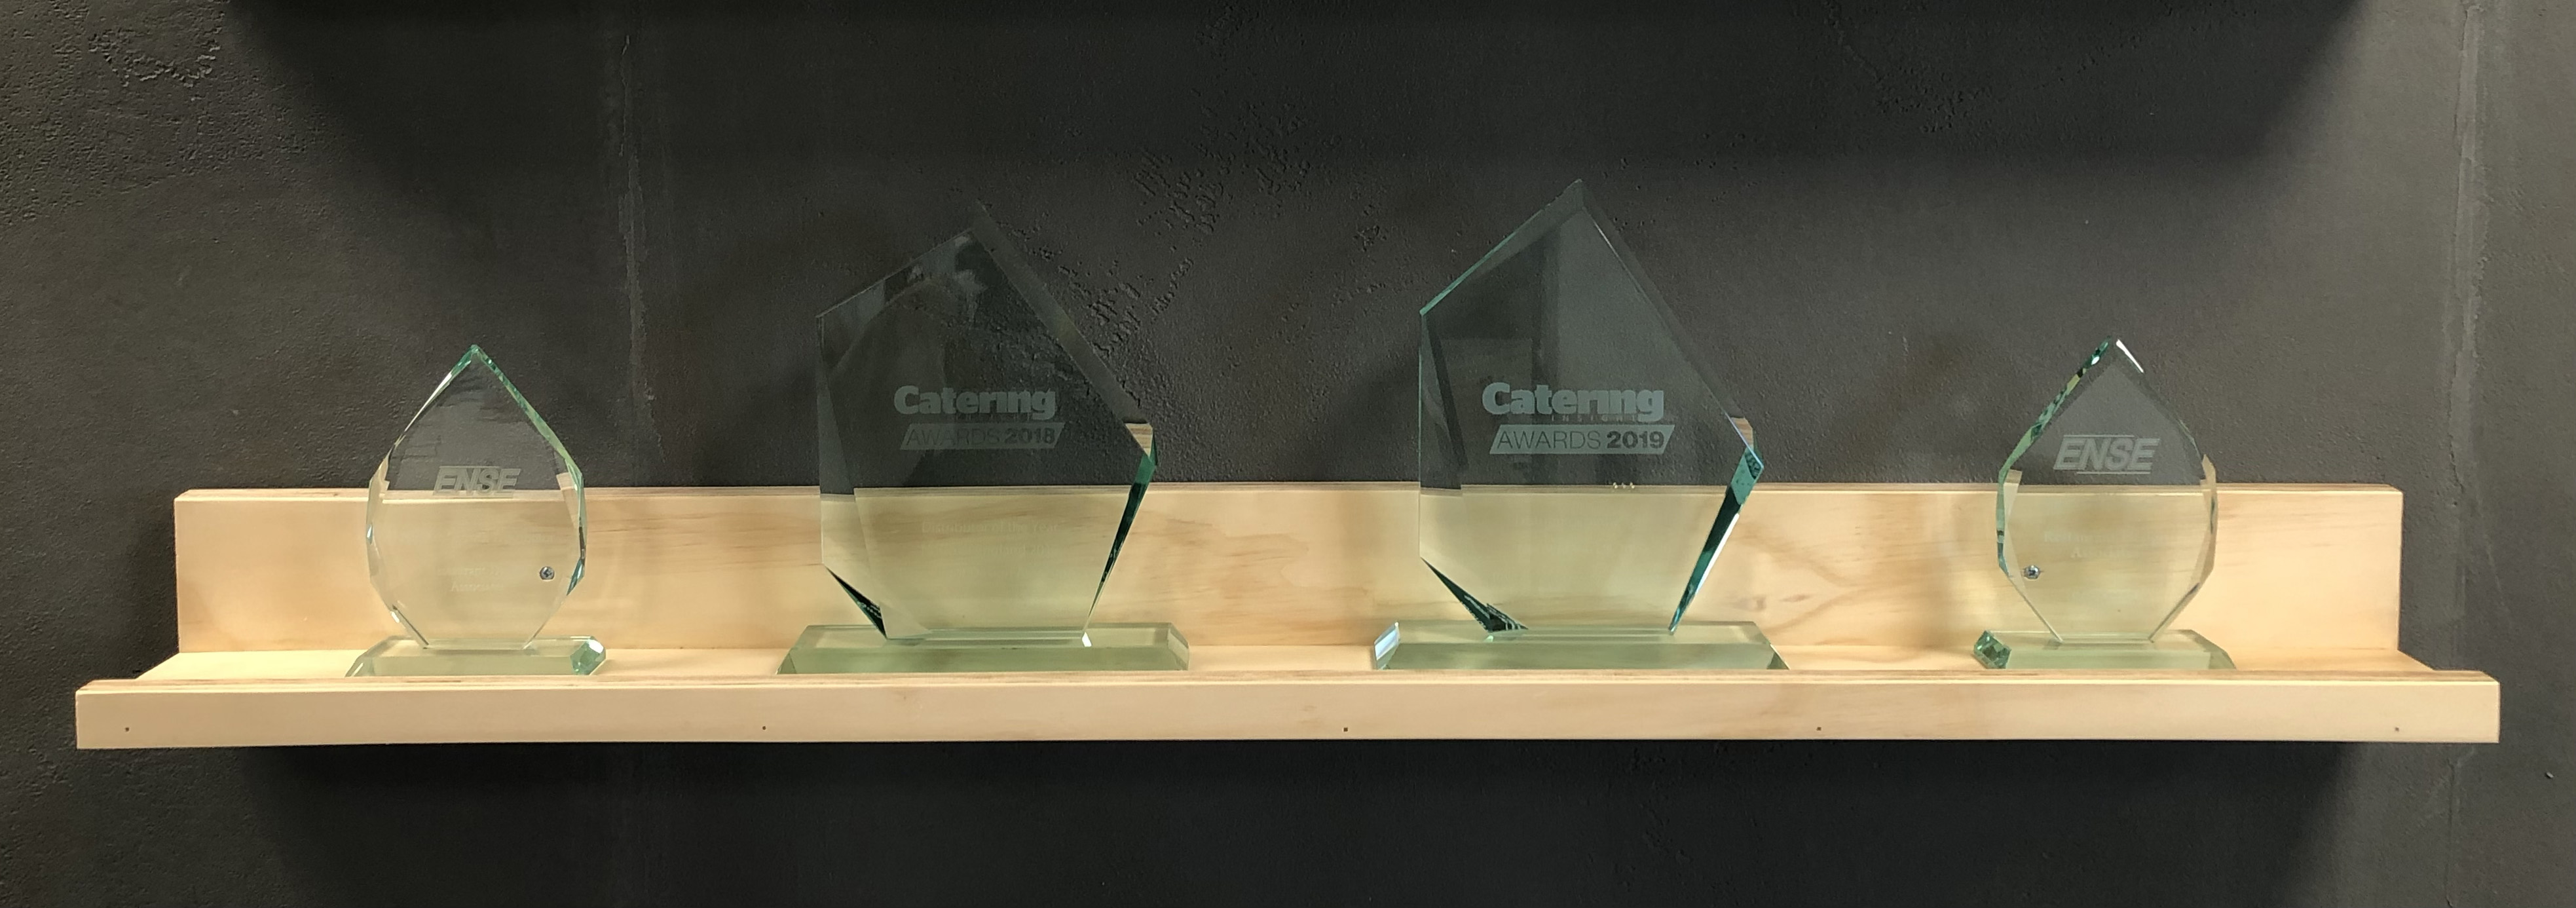 RDA Wins ENSE Highest Growth Distributor for 2nd year running